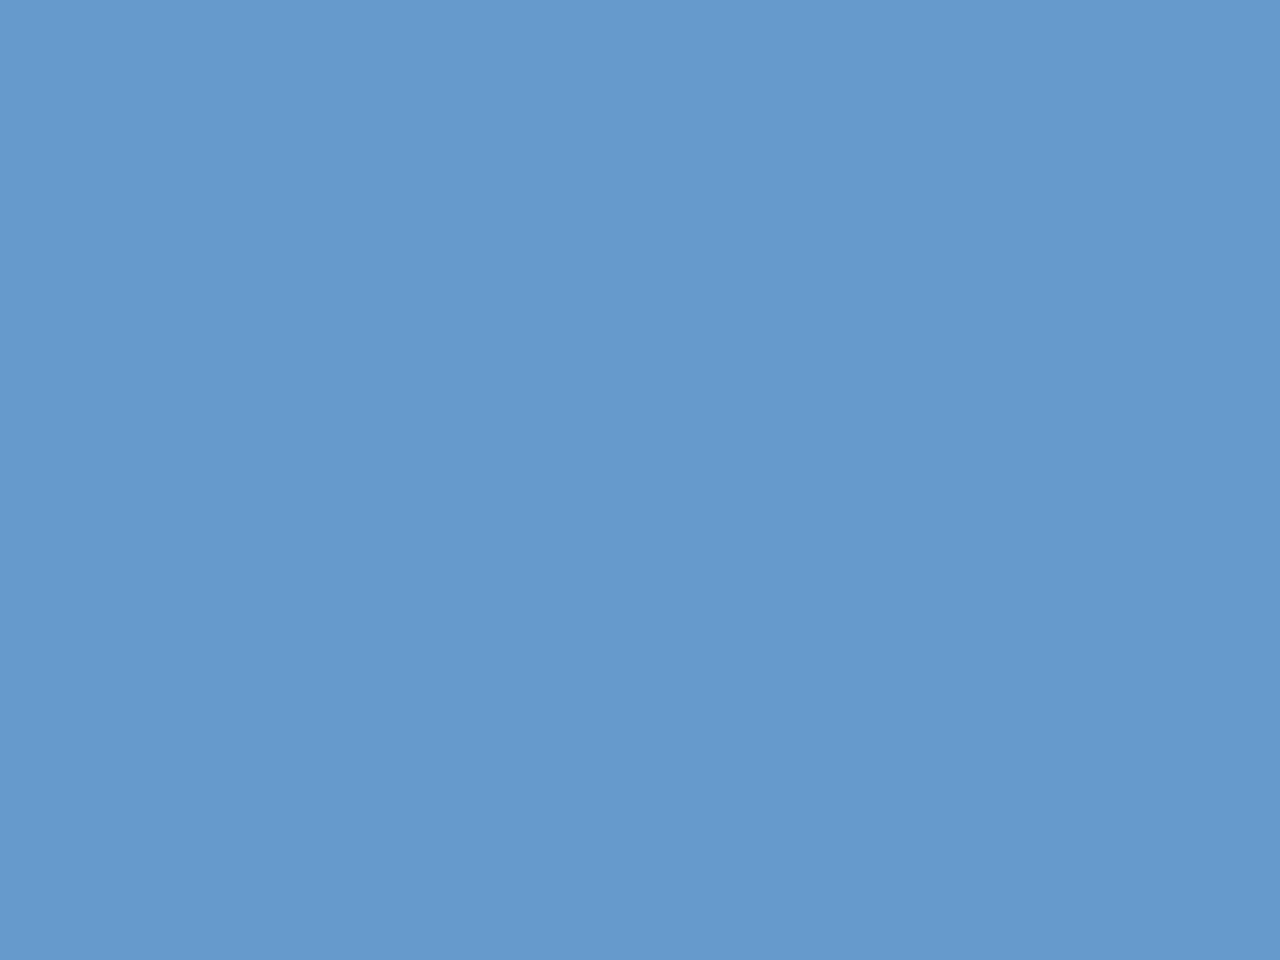 1280x960 Blue-gray Solid Color Background